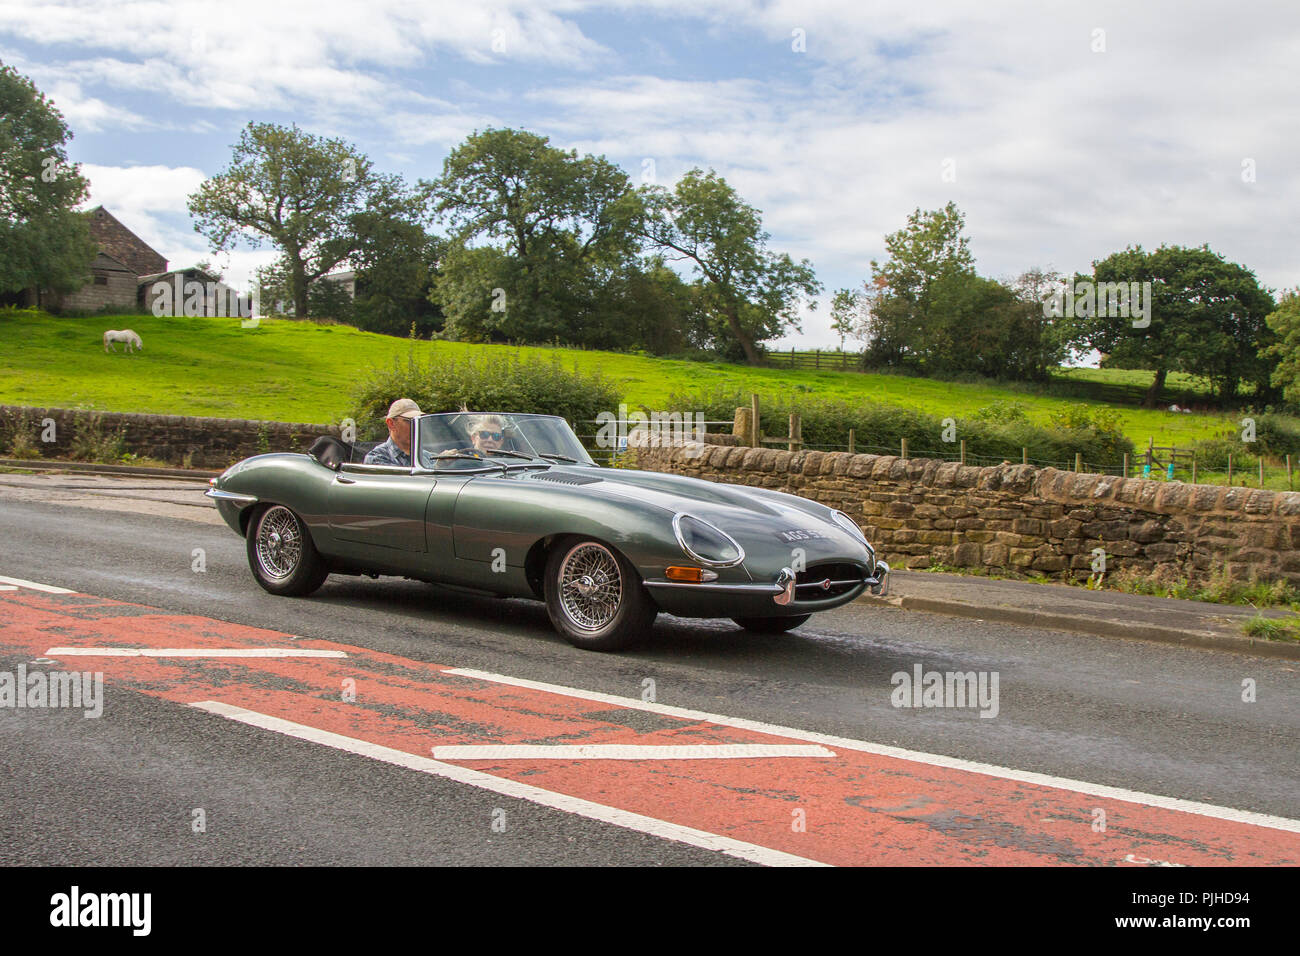 Jaguar 'E' Type Classic, vintage, veteran, cars of yesteryear, restored collectibles at Hoghton Tower Car Rally, UK - Stock Image